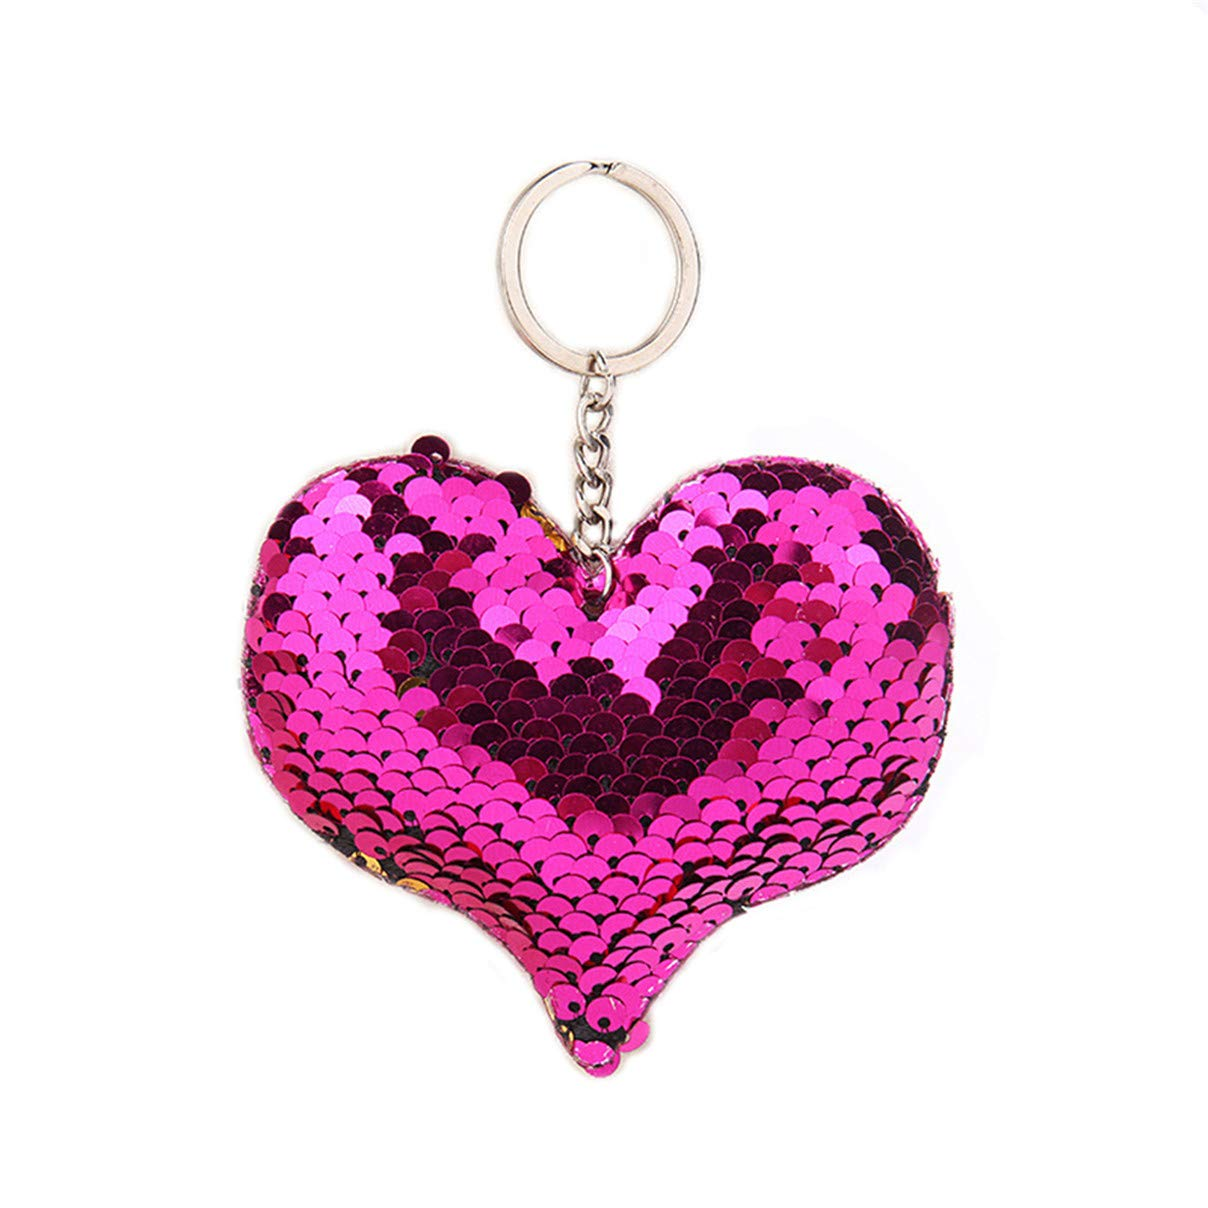 Essencedelight Heart Keychain Shiny Sequins Keyring Charm Pendant Purse Bag Key Ring Chain Gift for Wall Decor Party Favor